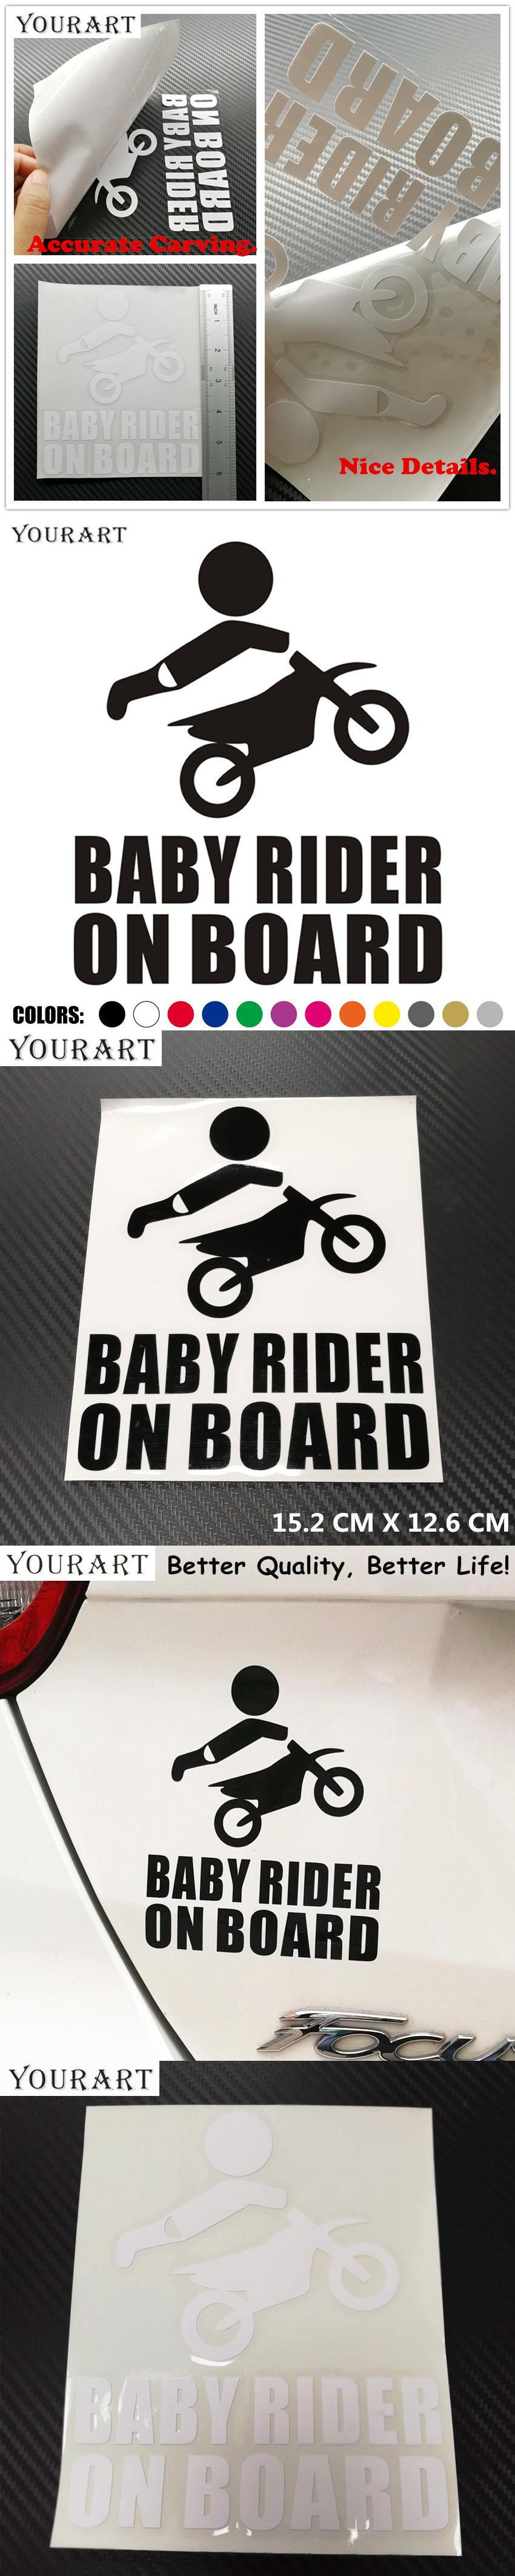 Yourart Funny Car Stickers And Decals Baby On Board Sticker Windshield Baby In Car Sticker Warning Car Stylin Car Stickers Funny Car Humor Exterior Accessories [ 4250 x 850 Pixel ]